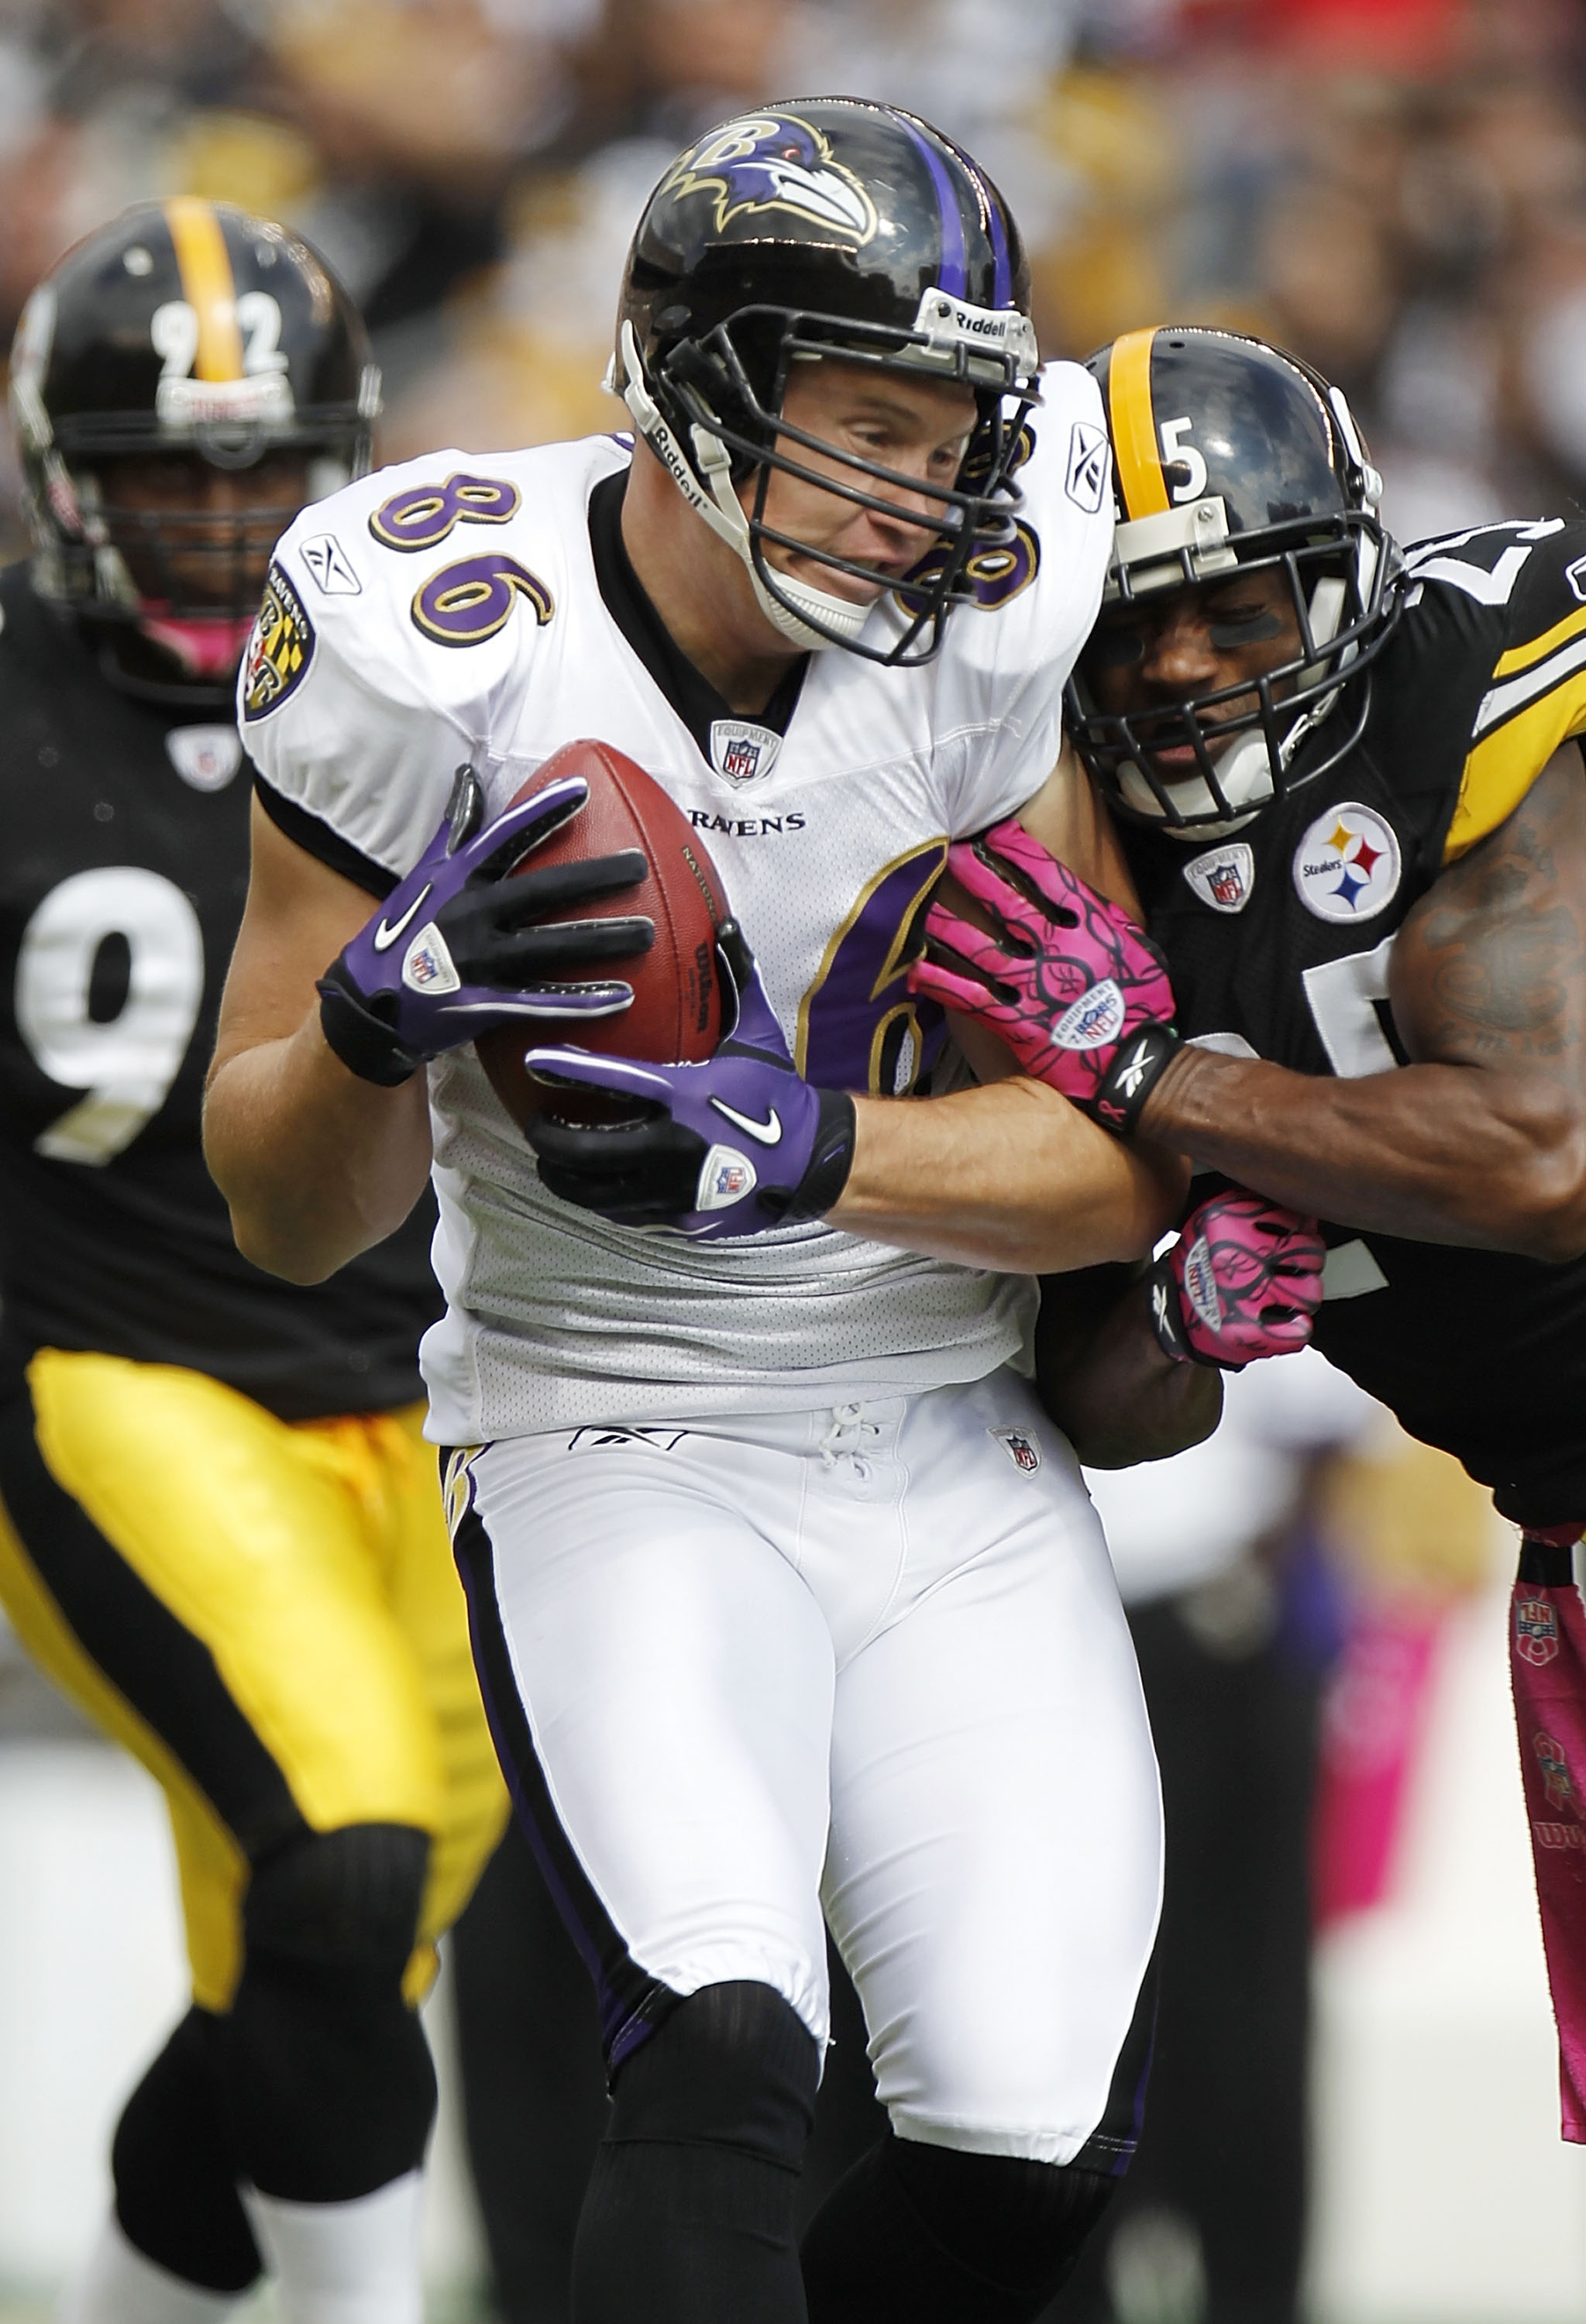 PITTSBURGH - OCTOBER 03: Todd Heap #86 of the Baltimore Ravens takes a hit by Ryan Clark #25 of the Pittsburgh Steelers on October 3, 2010 at Heinz Field in Pittsburgh, Pennsylvania.  (Photo by Gregory Shamus/Getty Images)